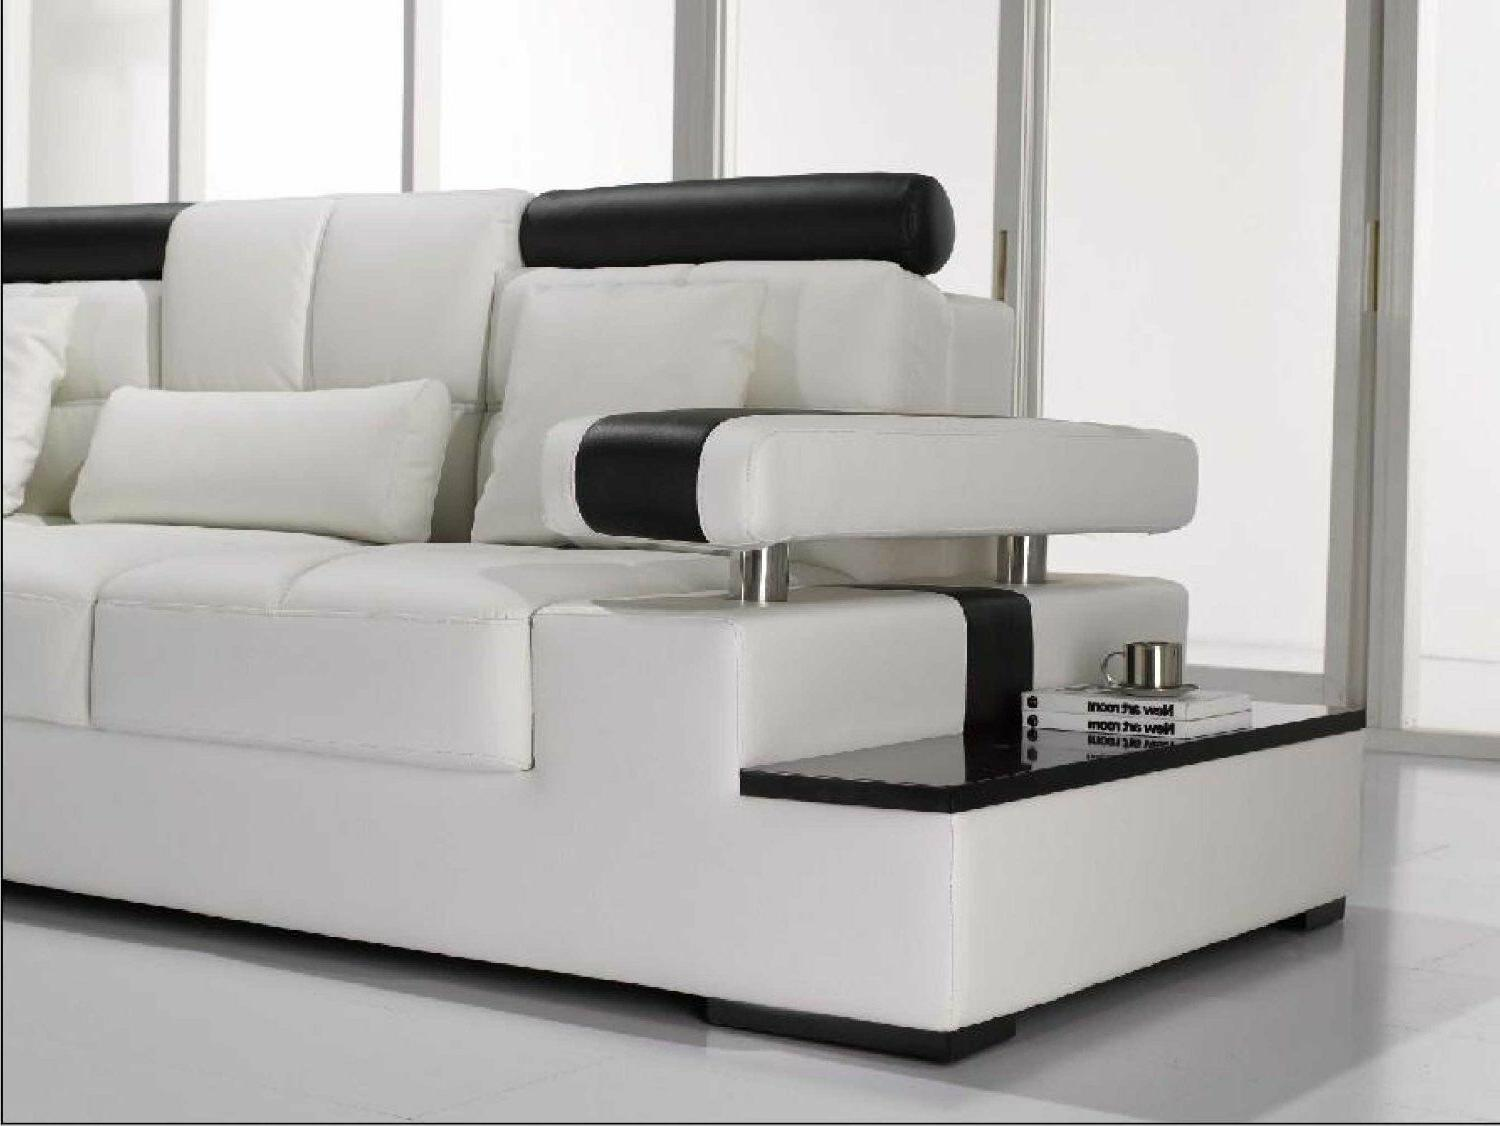 Contemporary Leather Sectional Sofa Table. CP-T117